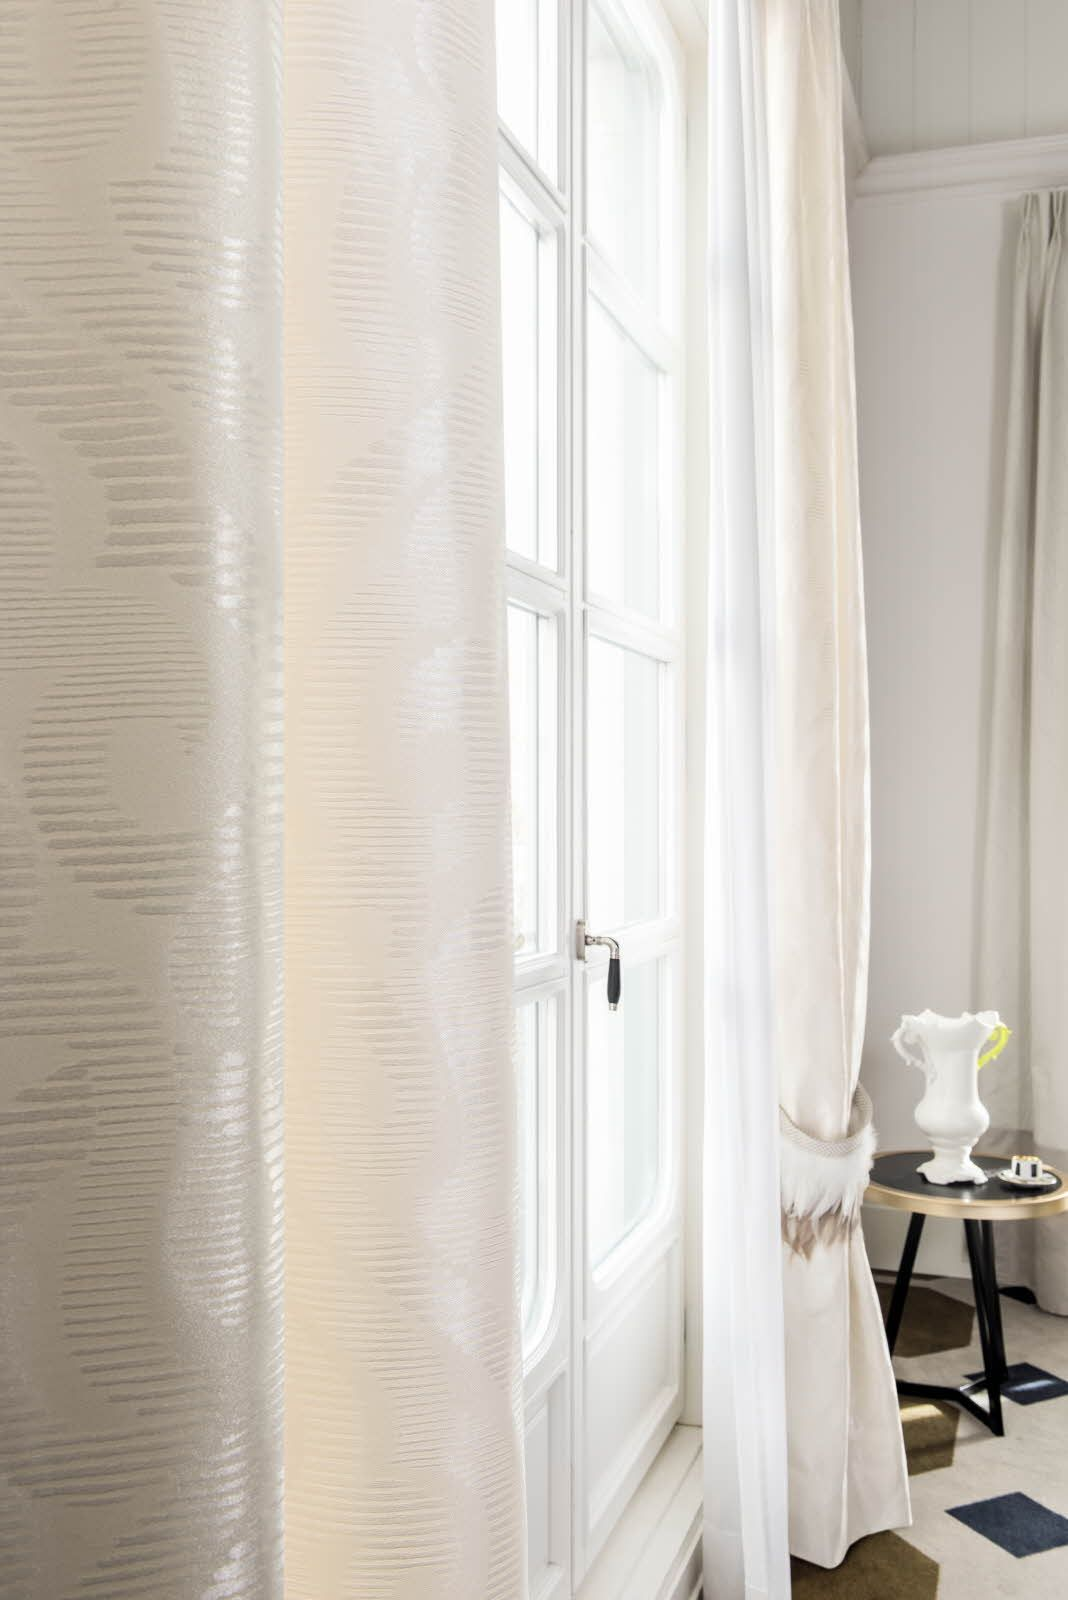 White Curtain Fabric From Fr One Palazzo Reale Range